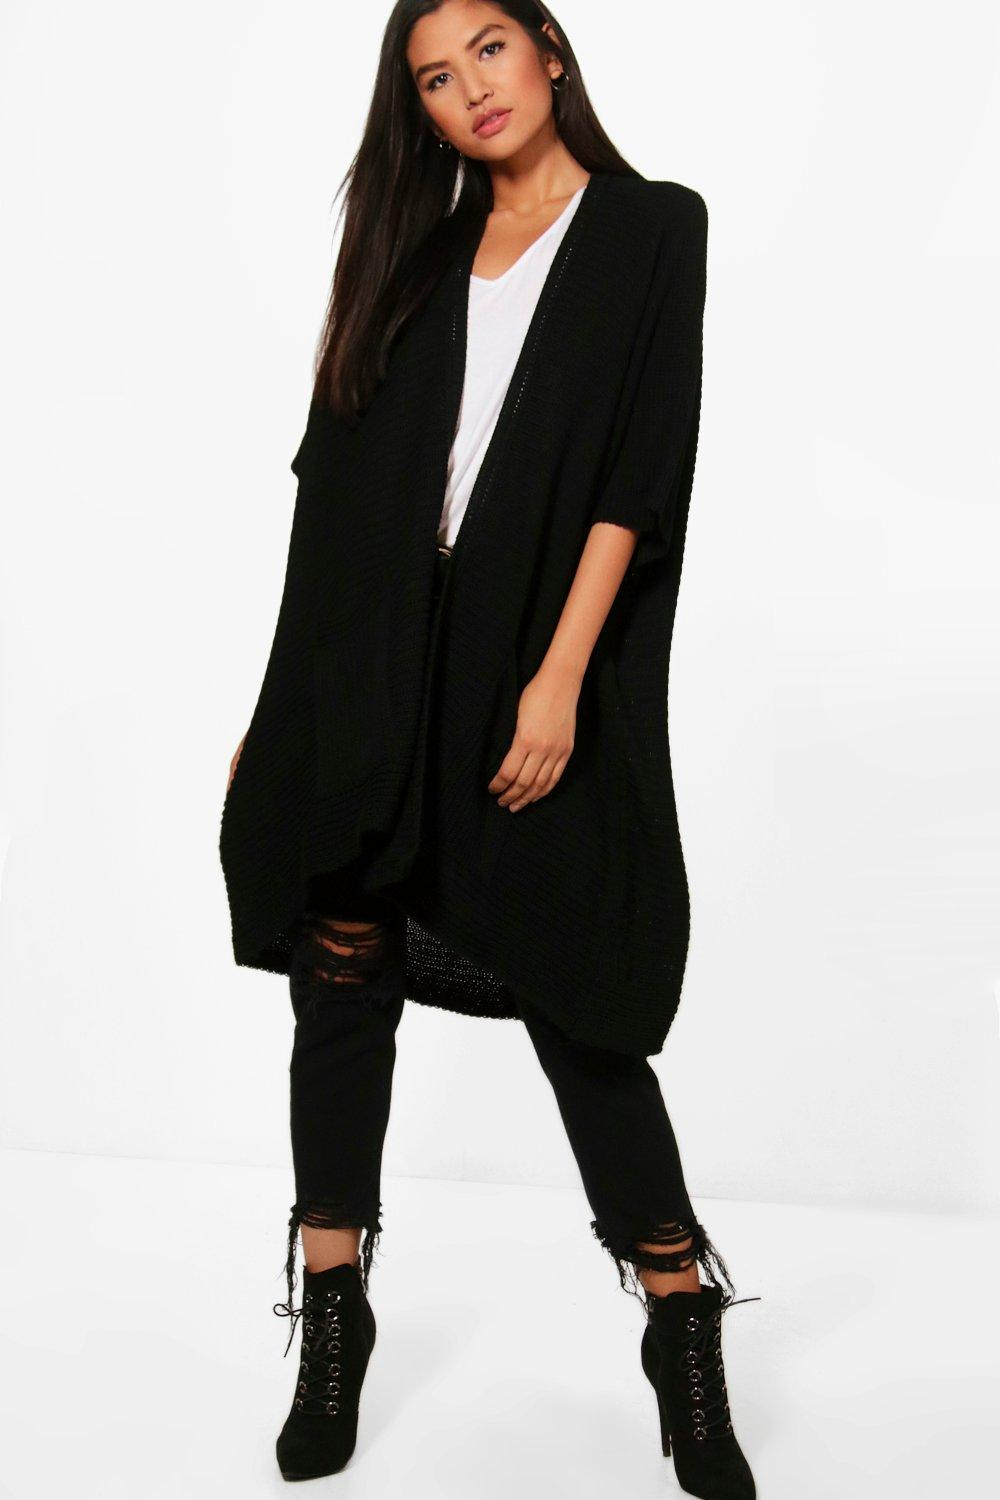 boohoo Flora Pocket Cape Cardigan - black $35.00 AT vintagedancer.com